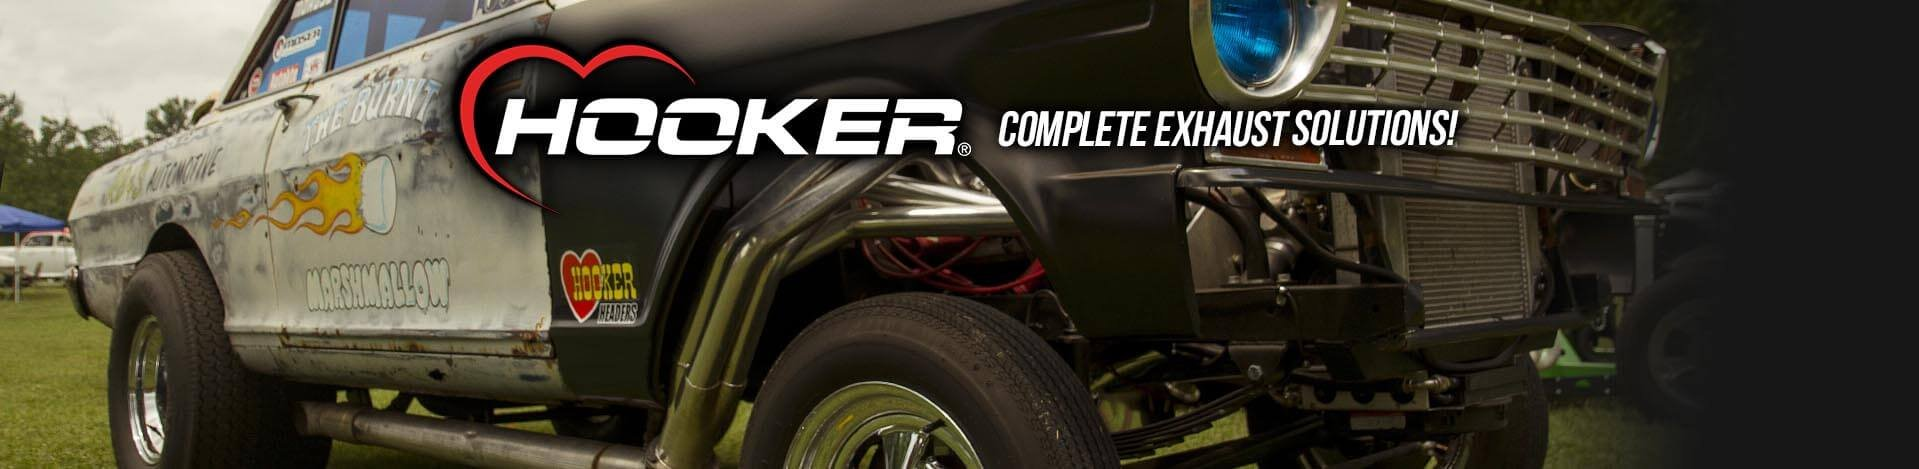 Hooker Headers Official Site Mufflers And Catback Exhaust 1996 Harley Sportster Wiring Diagram Systems